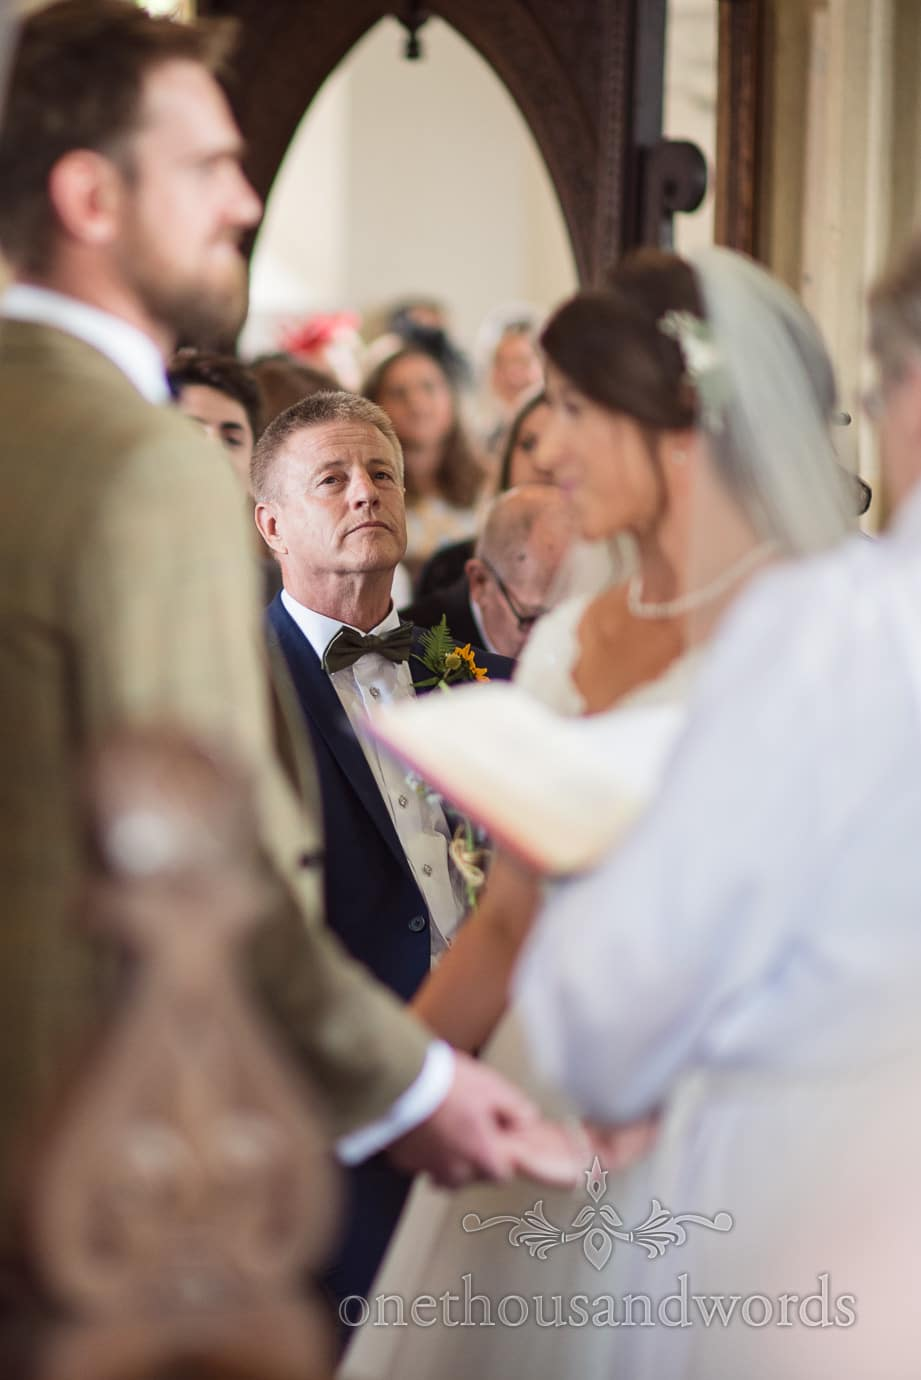 Father of the bride in bow tie watches his daughter's wedding ceremony in Church